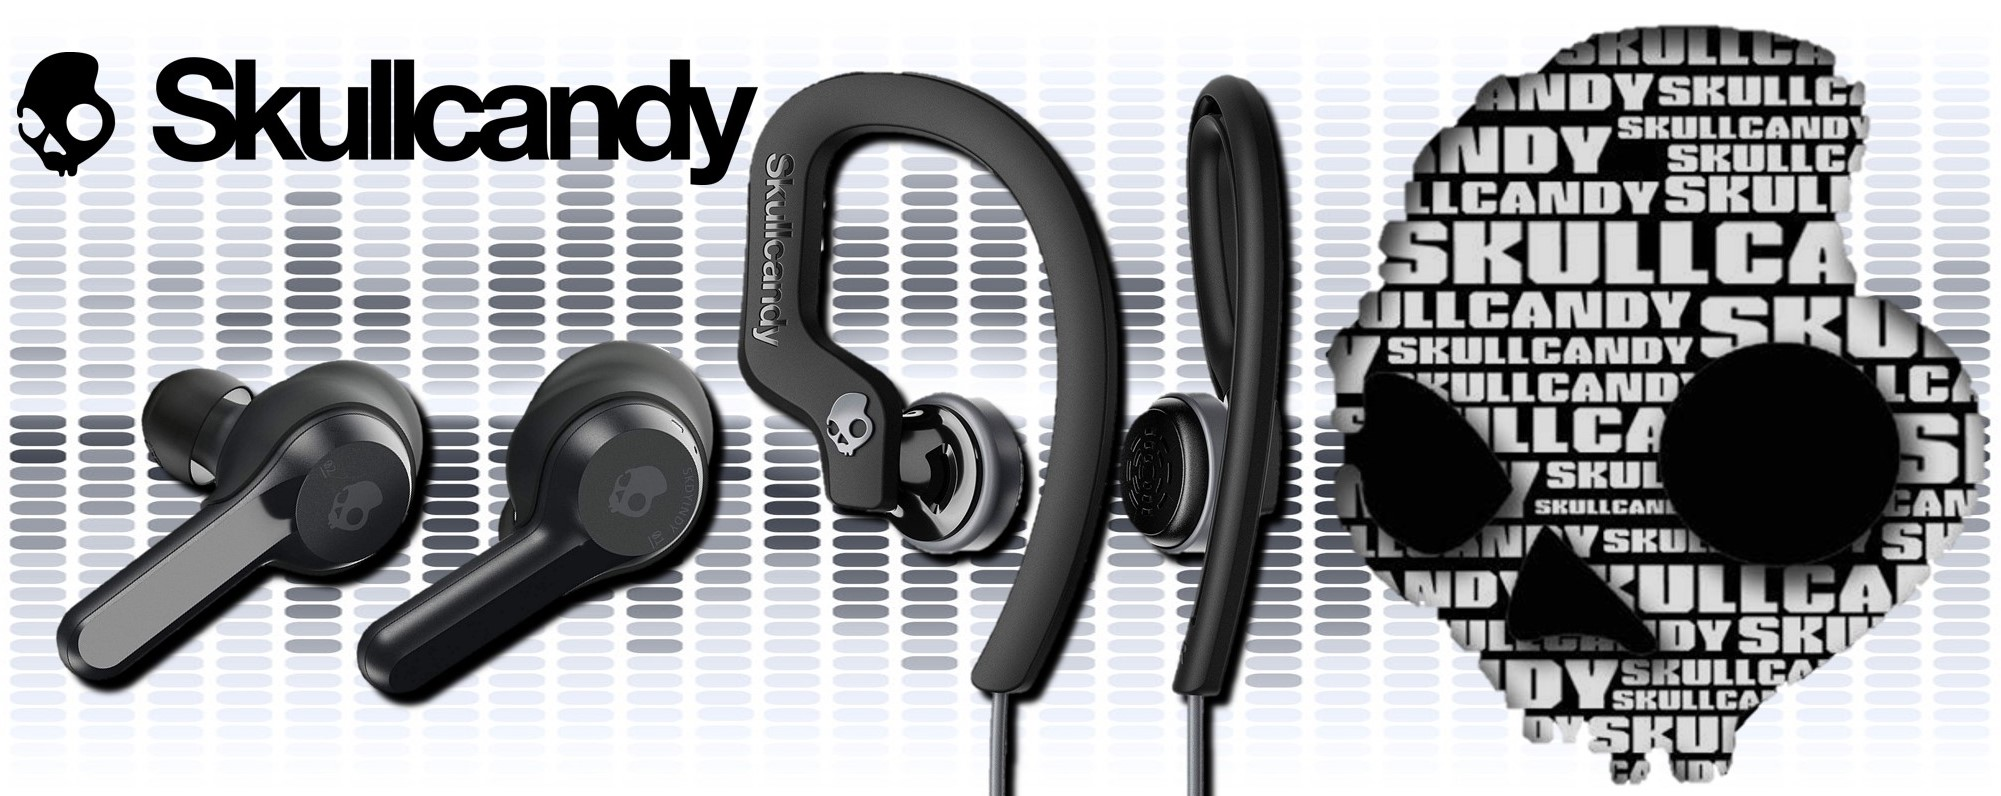 Skullcandy Headsets and Earbuds